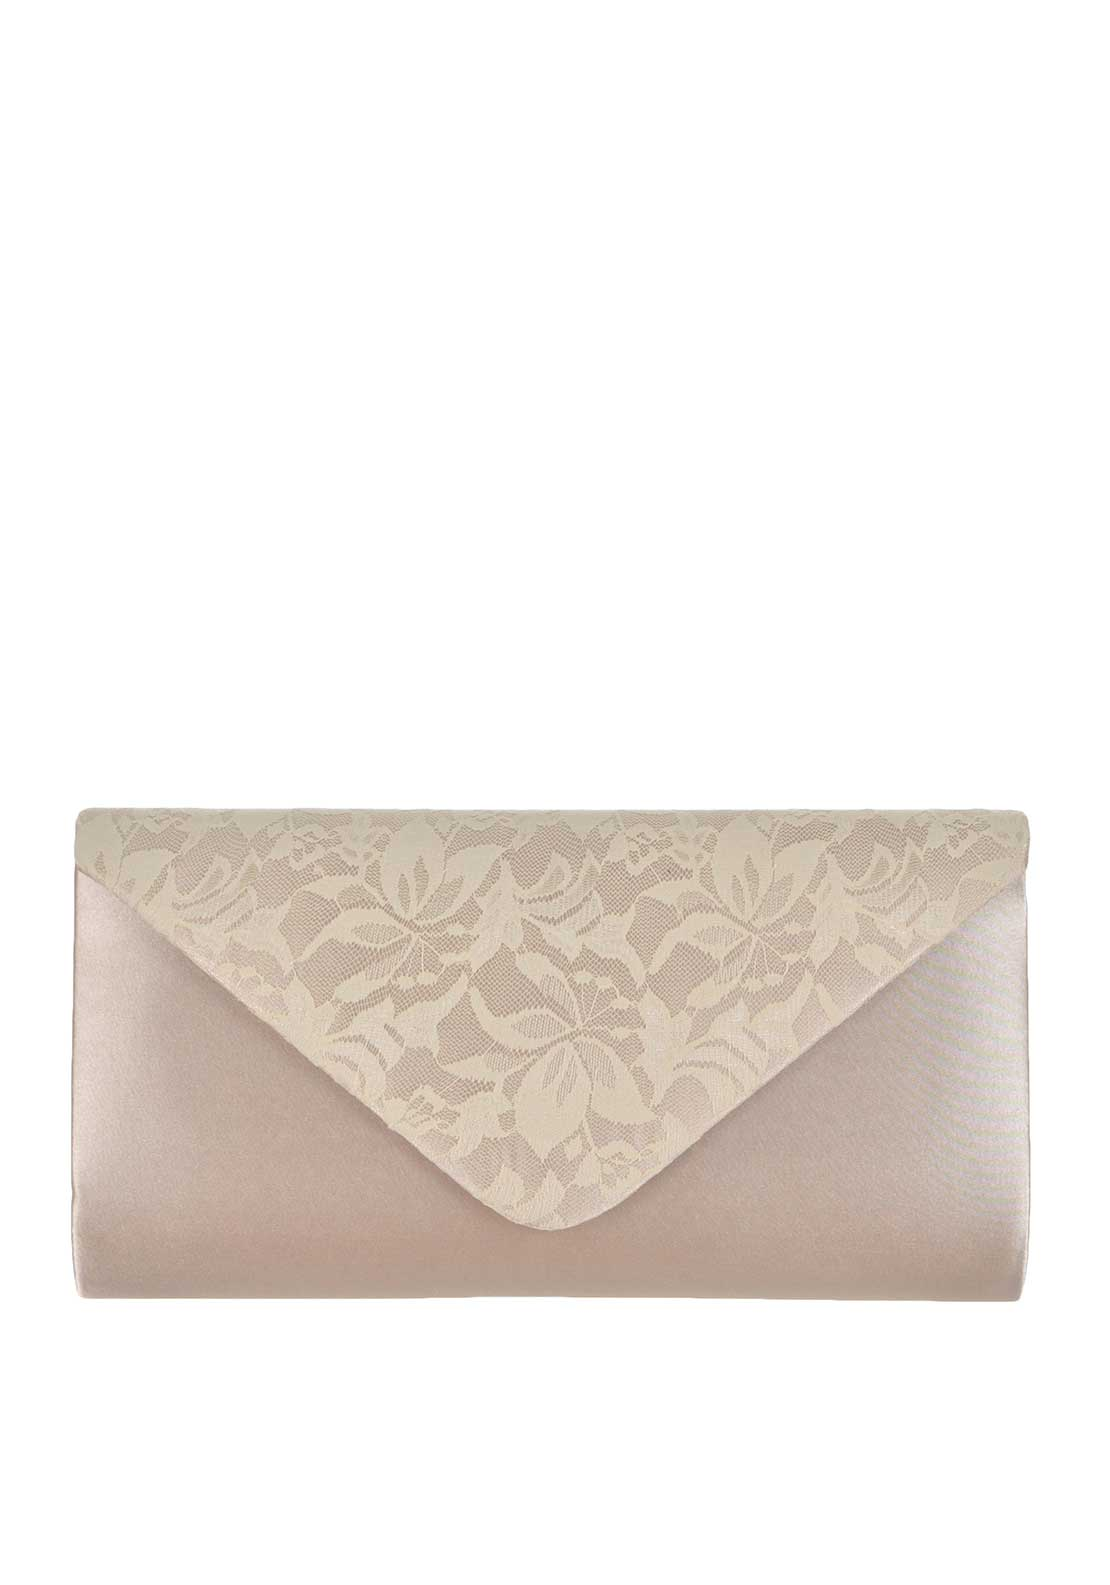 Glamour Satin Lace Envelope Clutch Bag, Nude